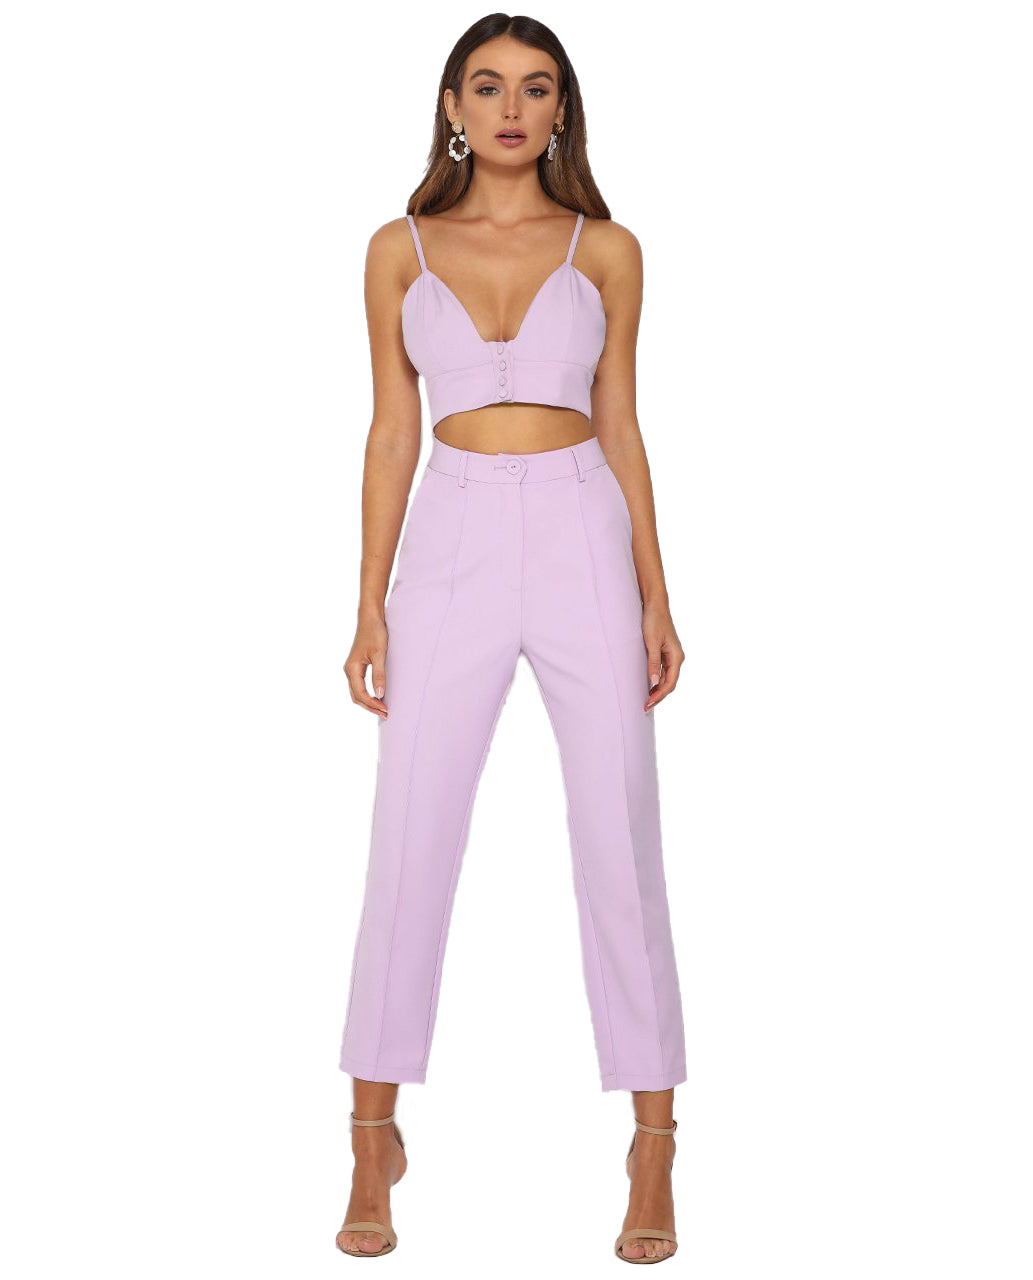 RUNAWAY THE LABEL LILAC NEED WANT THREE PIECE